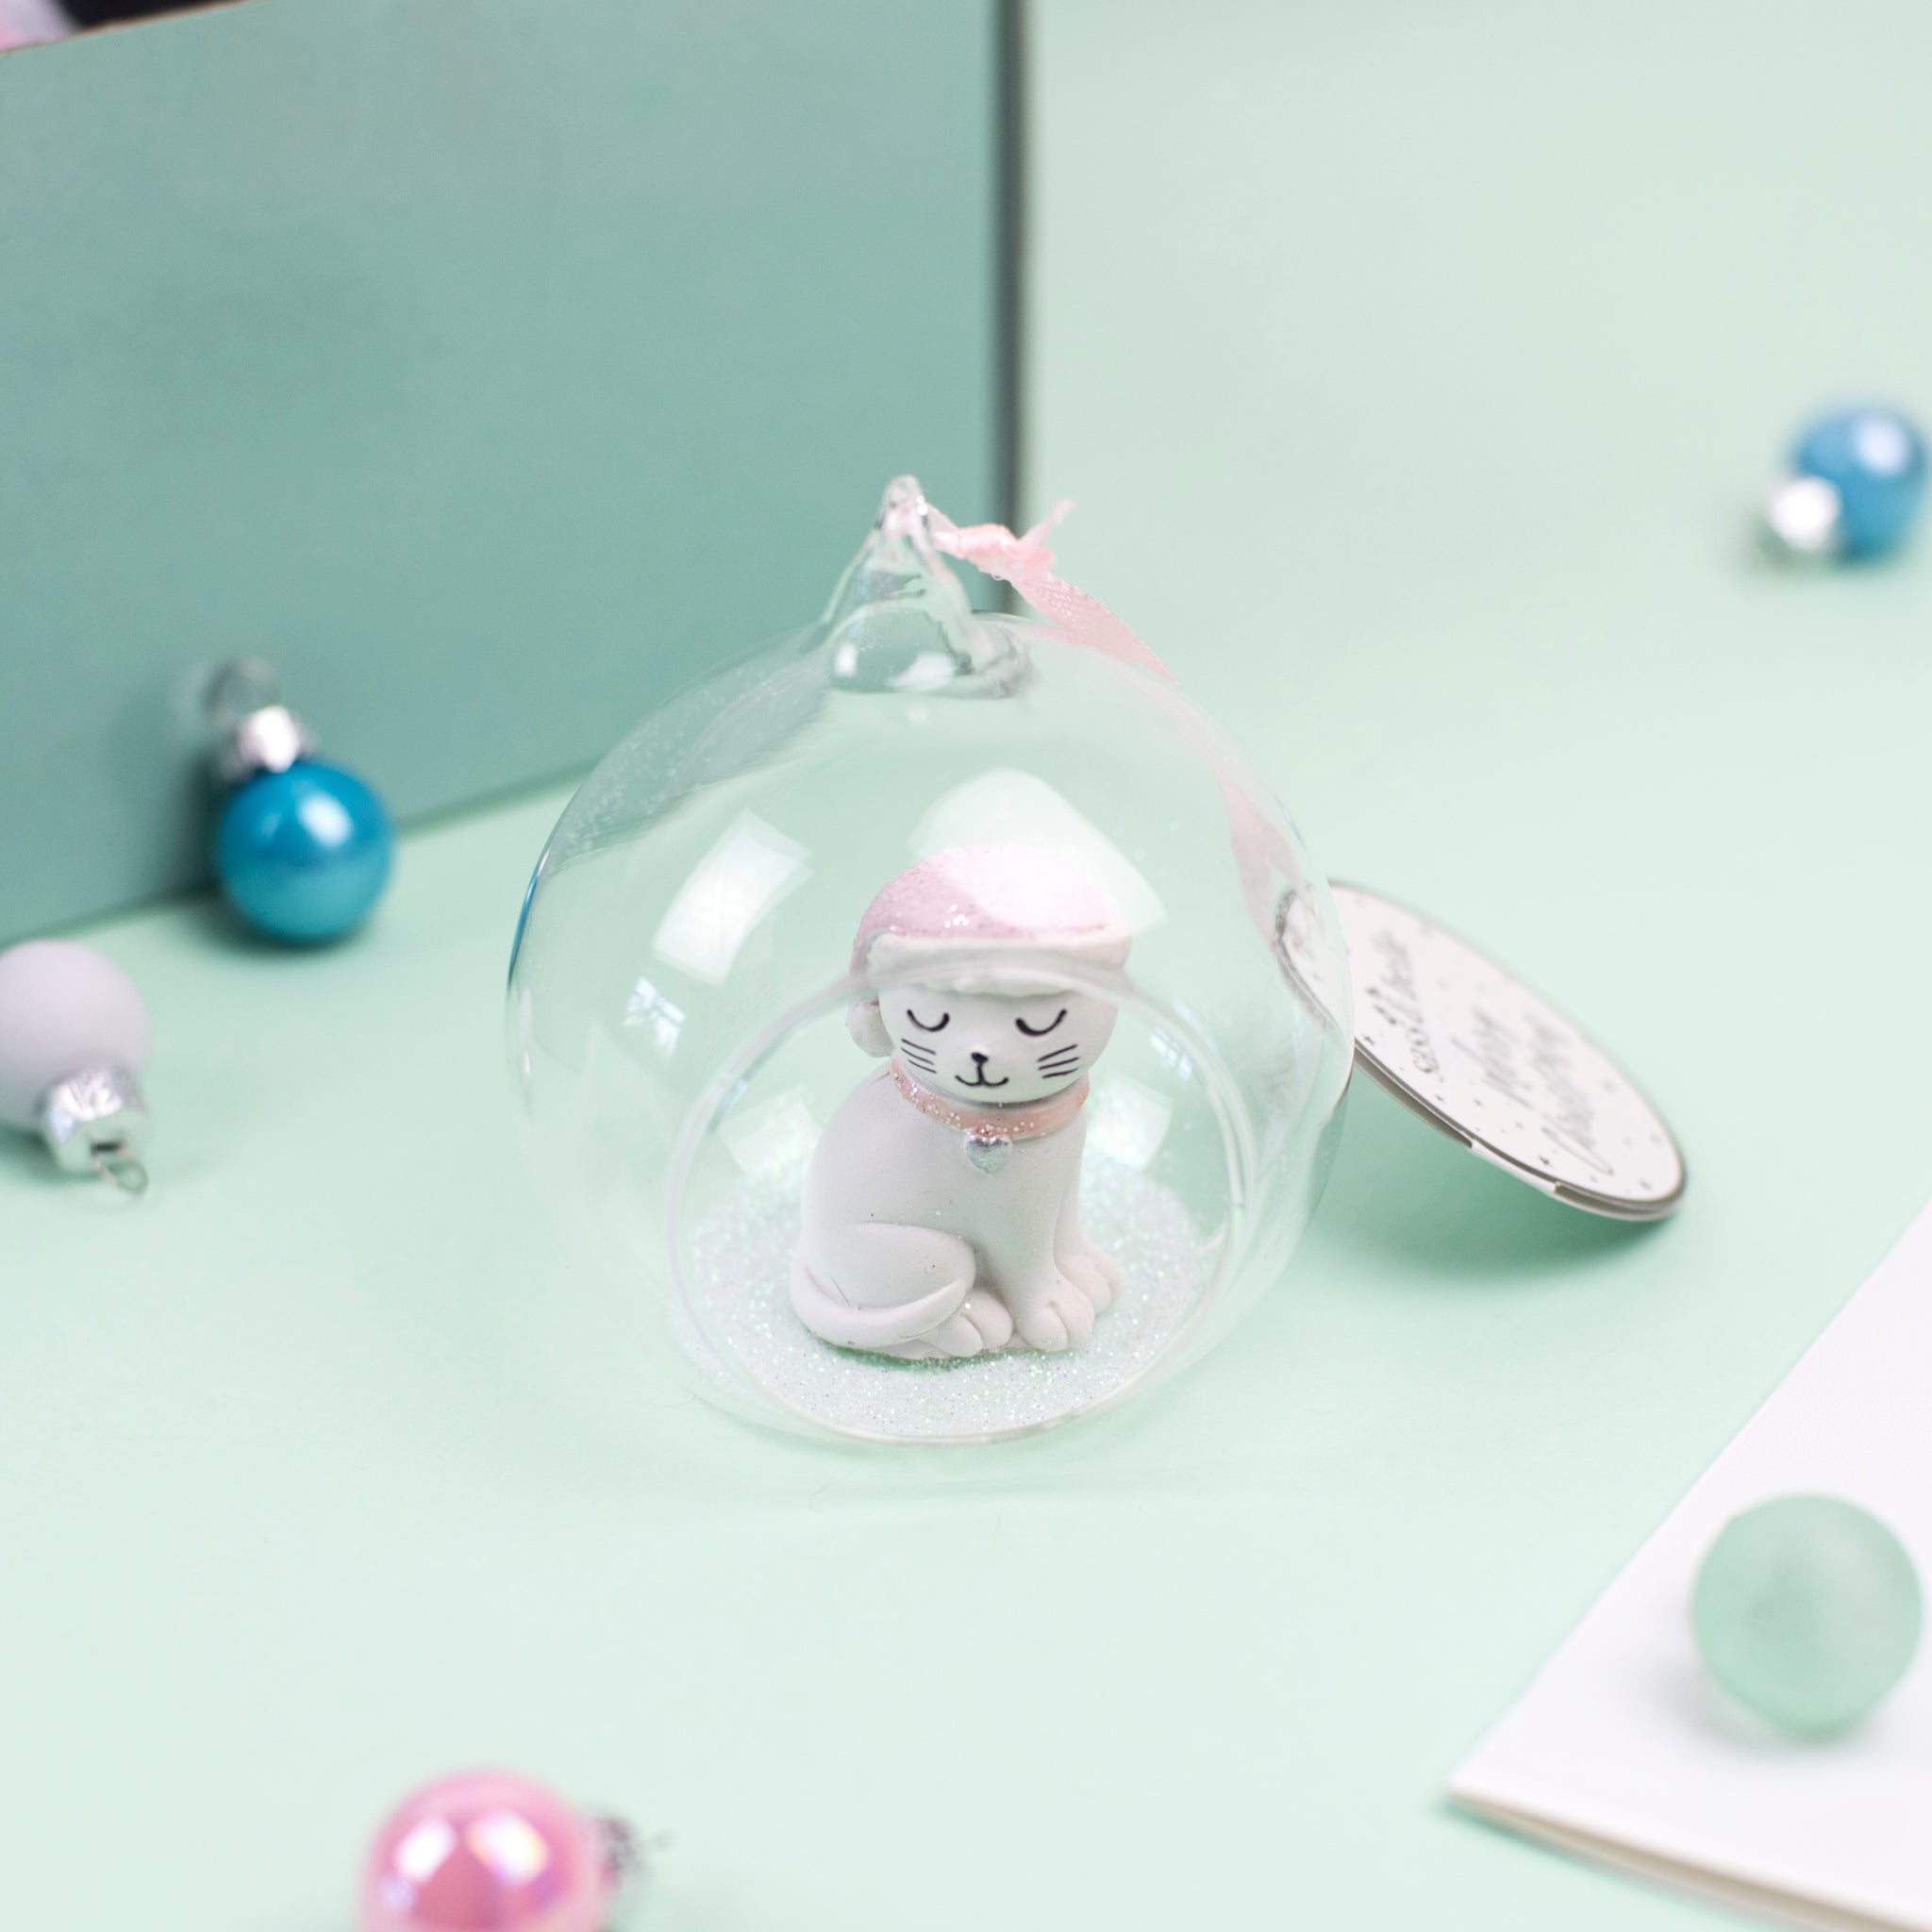 Whimsical glass and glitter bauble